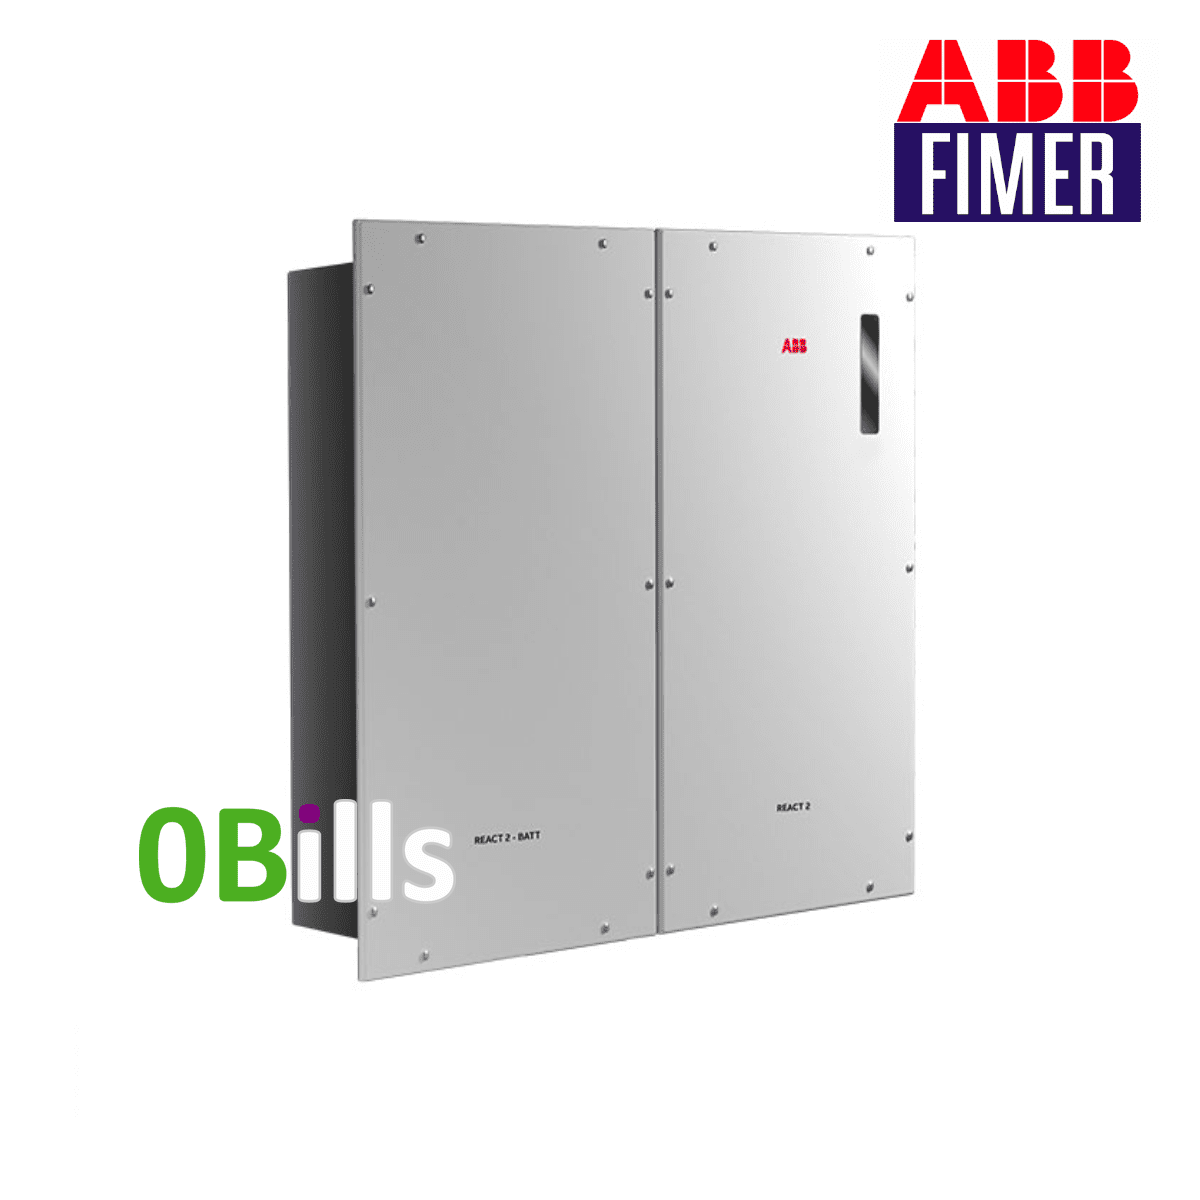 ABB Fimer REACT2-UNO-3.6-TL 4kW Modular Li-Ion Battery Storage for Sale